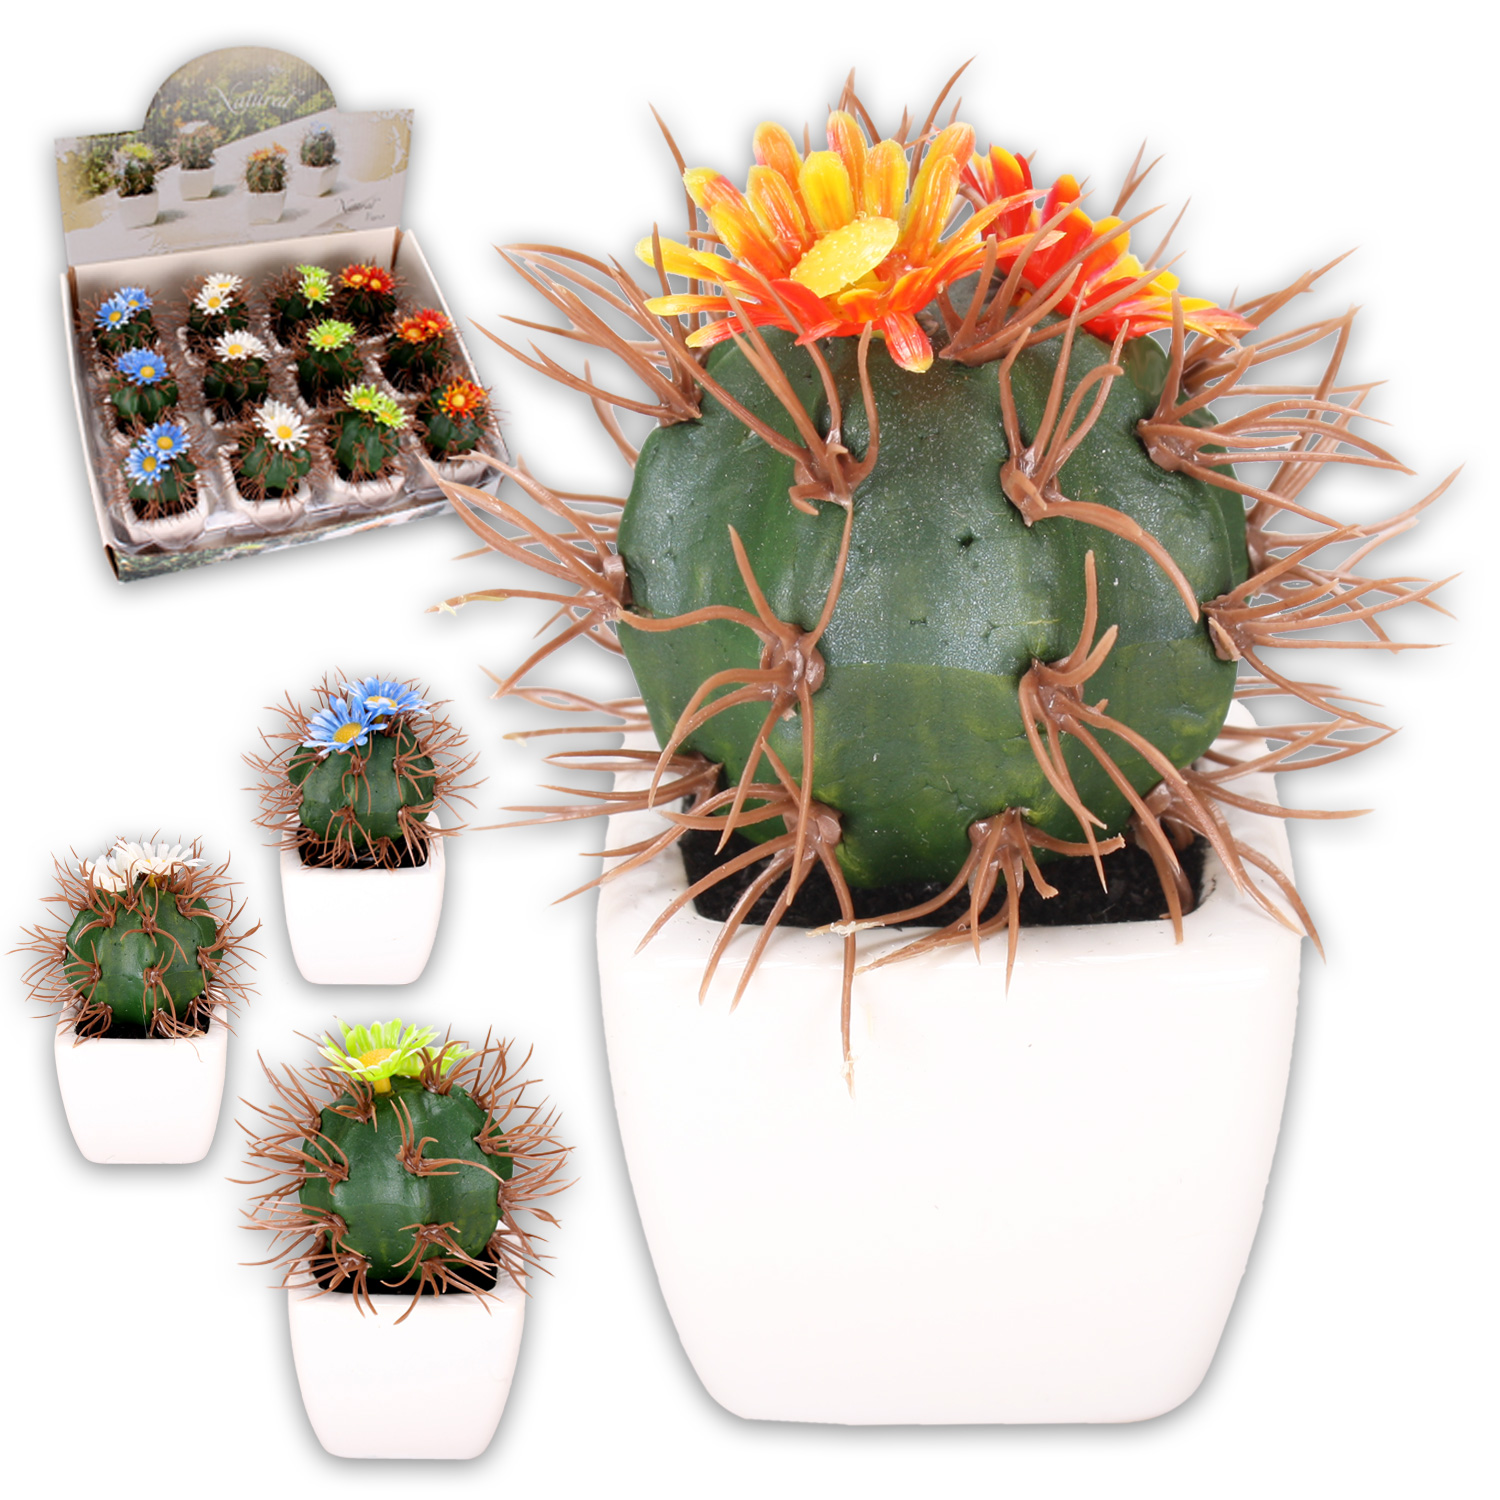 12 artificial cactus im ceramic planter flowers deco blumen. Black Bedroom Furniture Sets. Home Design Ideas